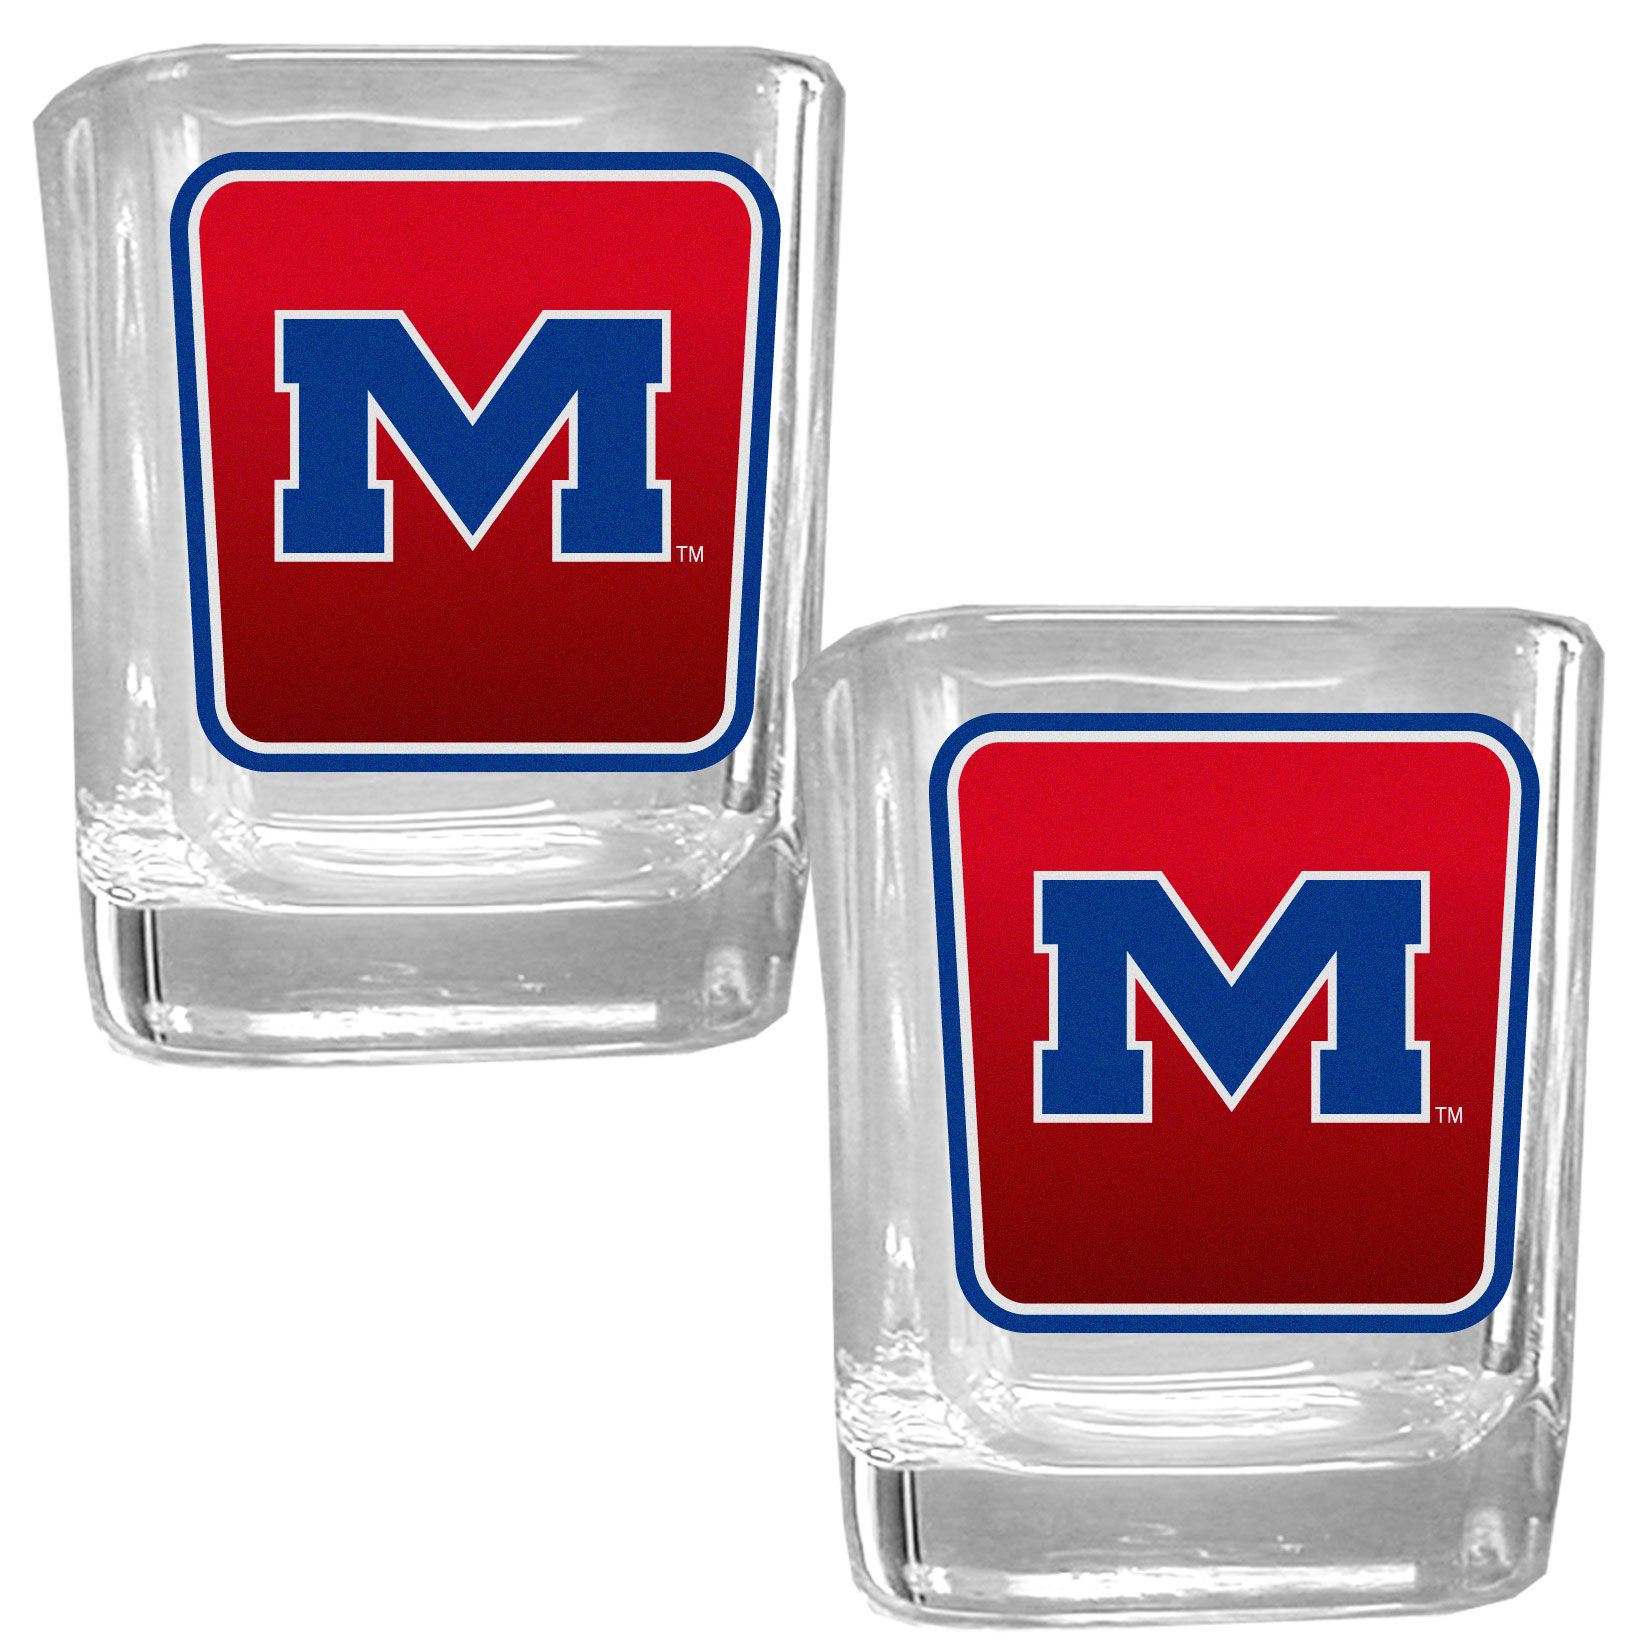 Mississippi Rebels Square Glass Shot Glass Set - Our glass shot glasses are perfect for collectors or any game day event. The 2 ounce glasses feature bright, vidid digital Mississippi Rebels graphics. Comes in a set of 2.